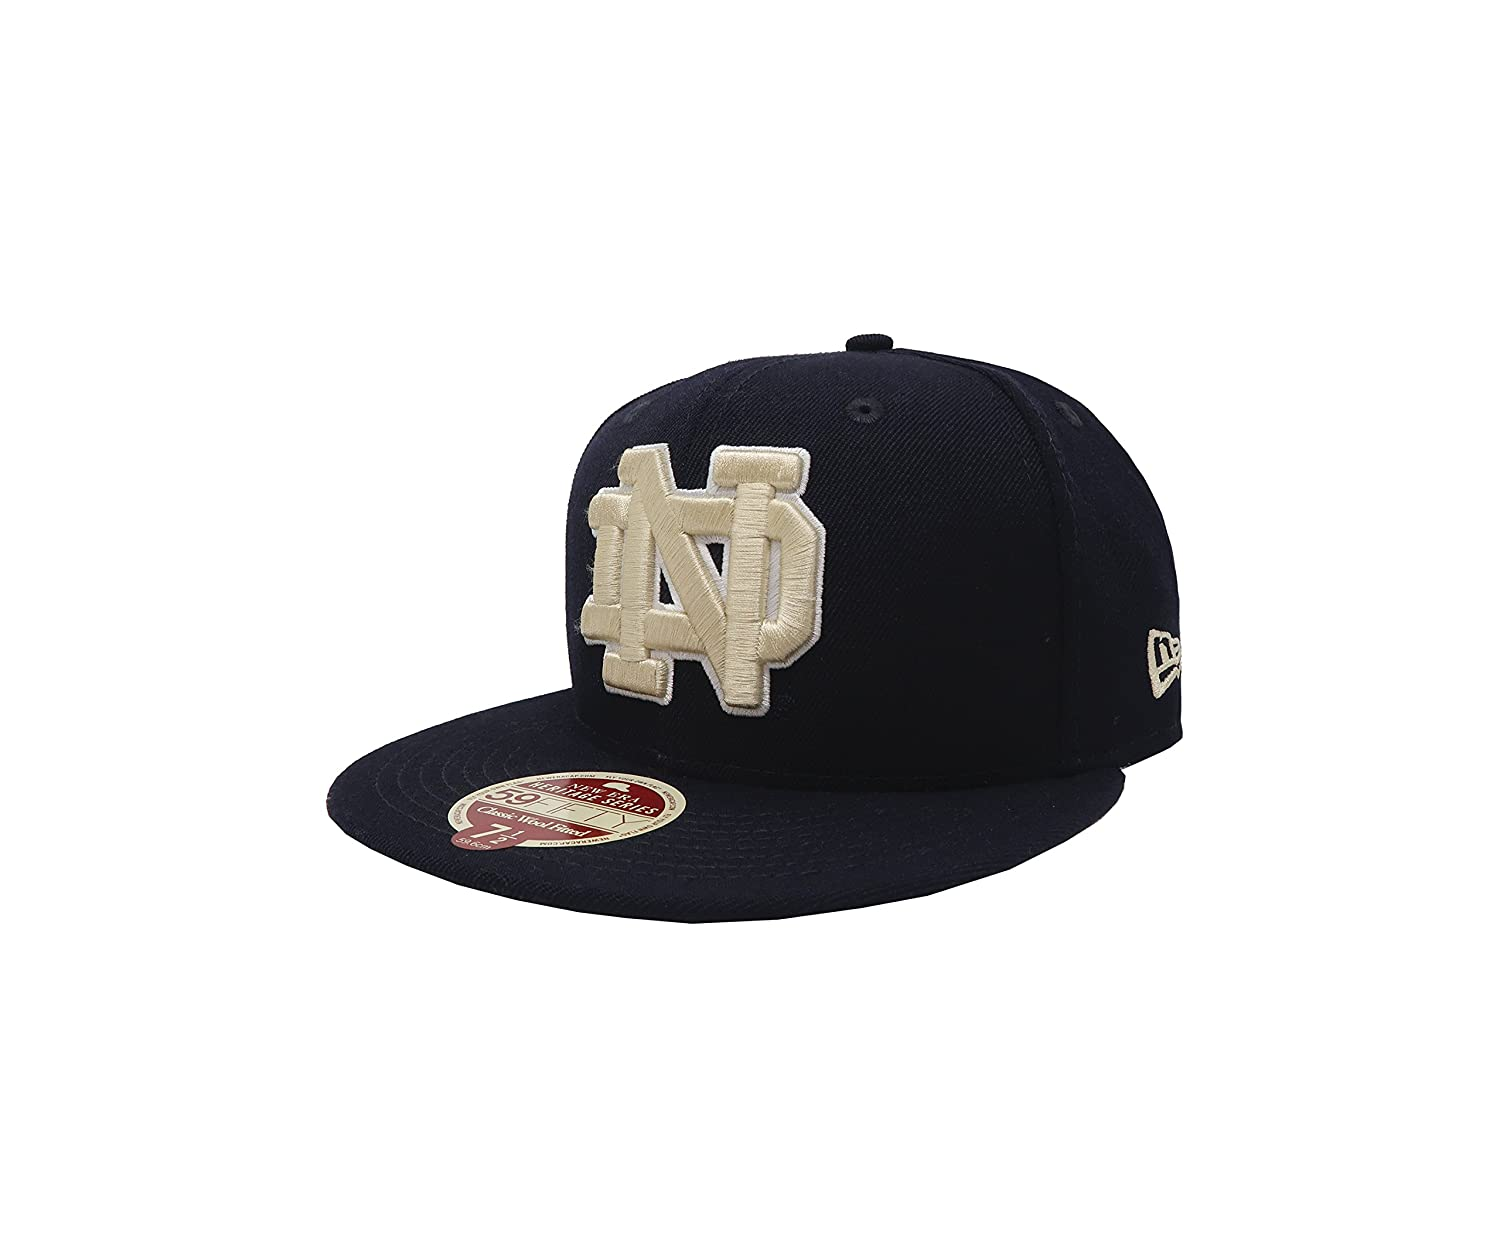 de289679881d12 80200059 Heritage Series Hat University of Notre Dame Fighting Irish Fitted  Cap at Amazon Men's Clothing store: